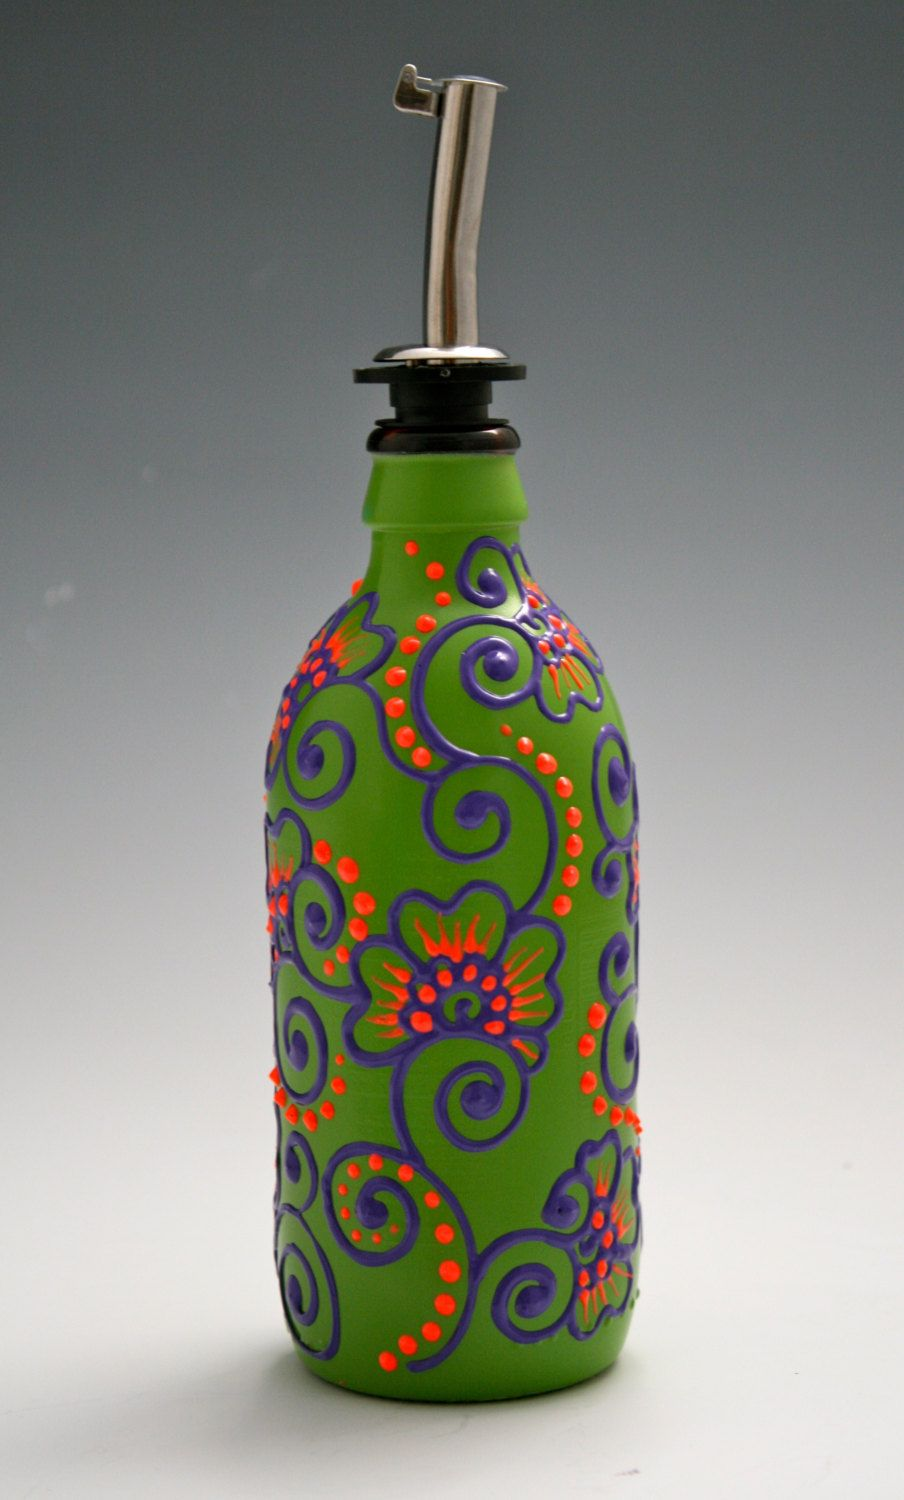 Resultado de imagem para painting vase vietnam recyclated bottle hand painted glass bottle olive oil pourer candy apple green purple and orange flowers and swirls olive oil dispenser mais reviewsmspy